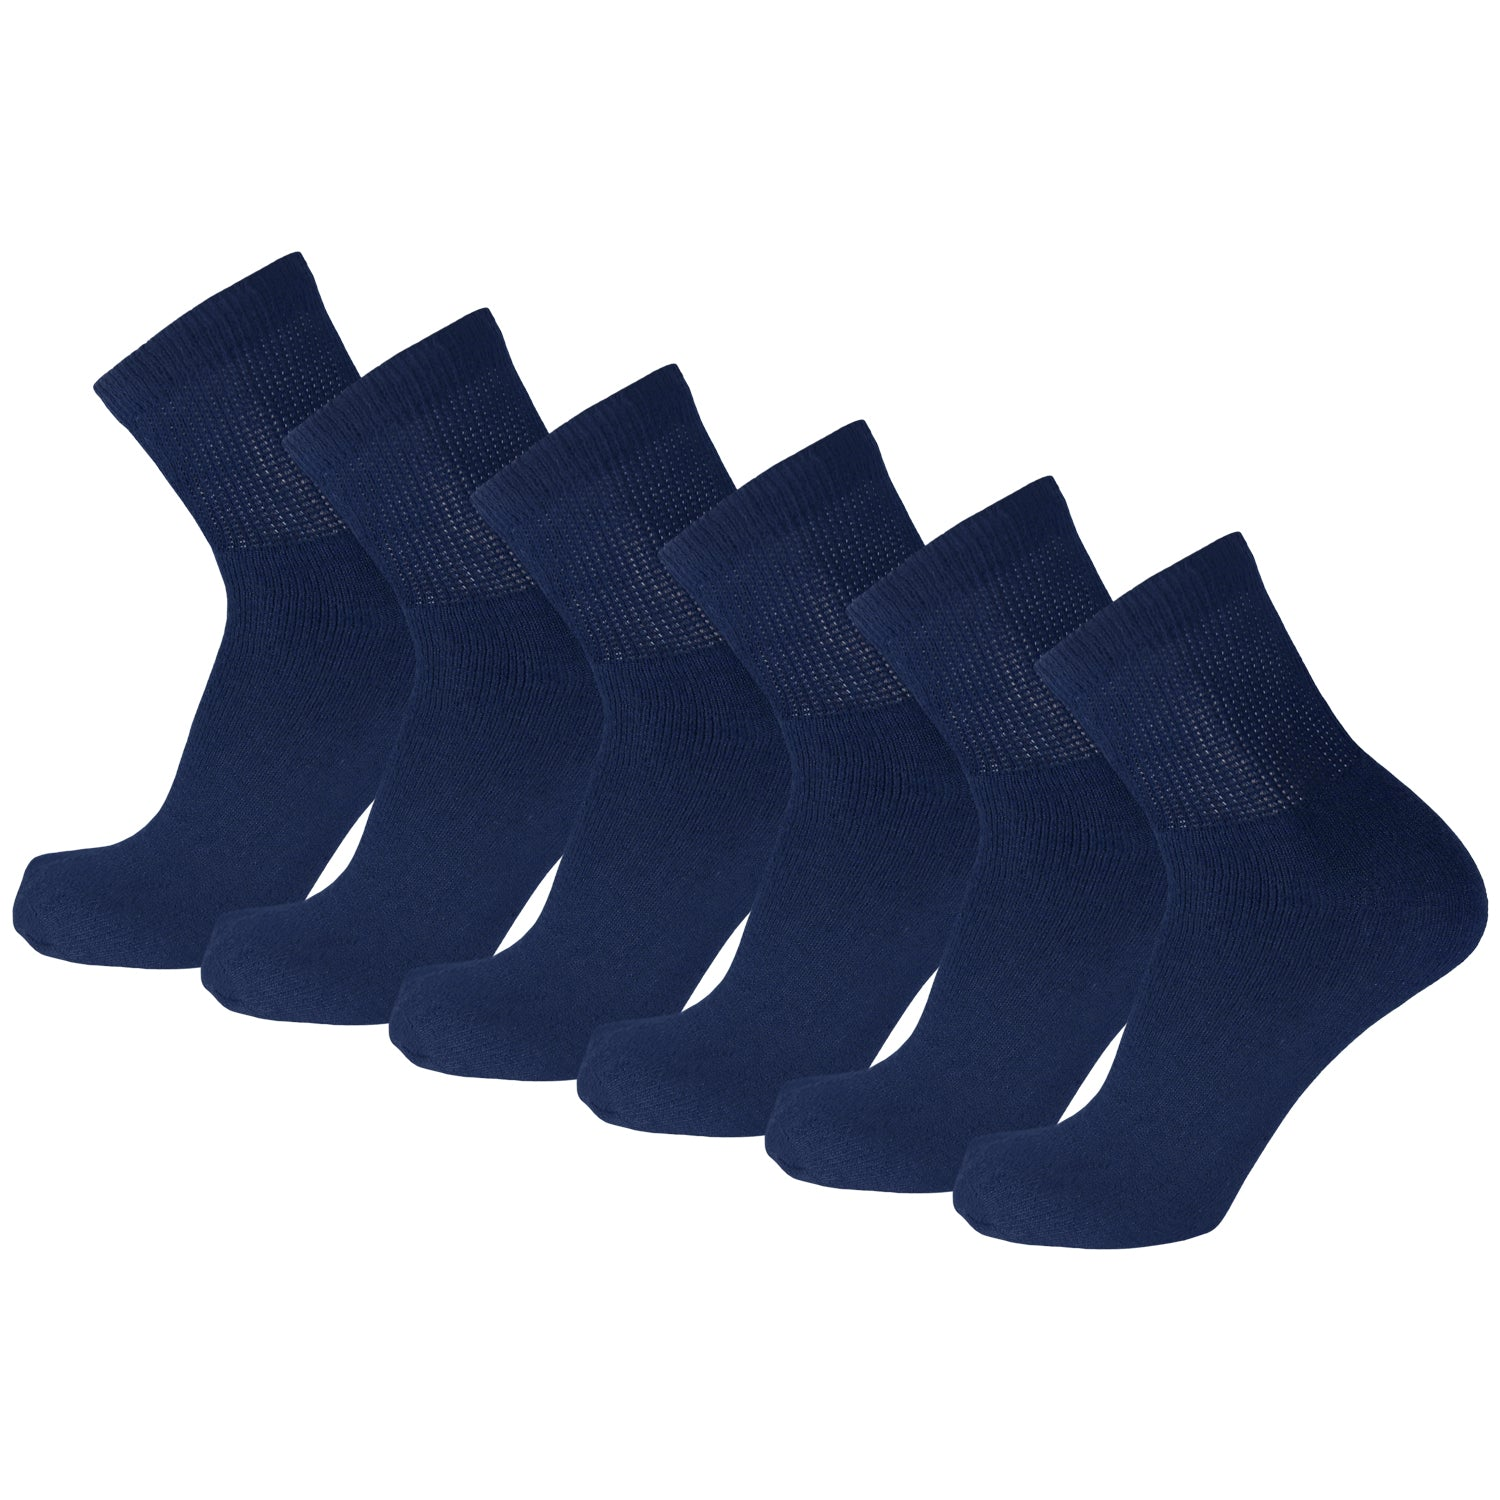 Navy Diabetic Non Binding Ankle Socks 6 Pairs